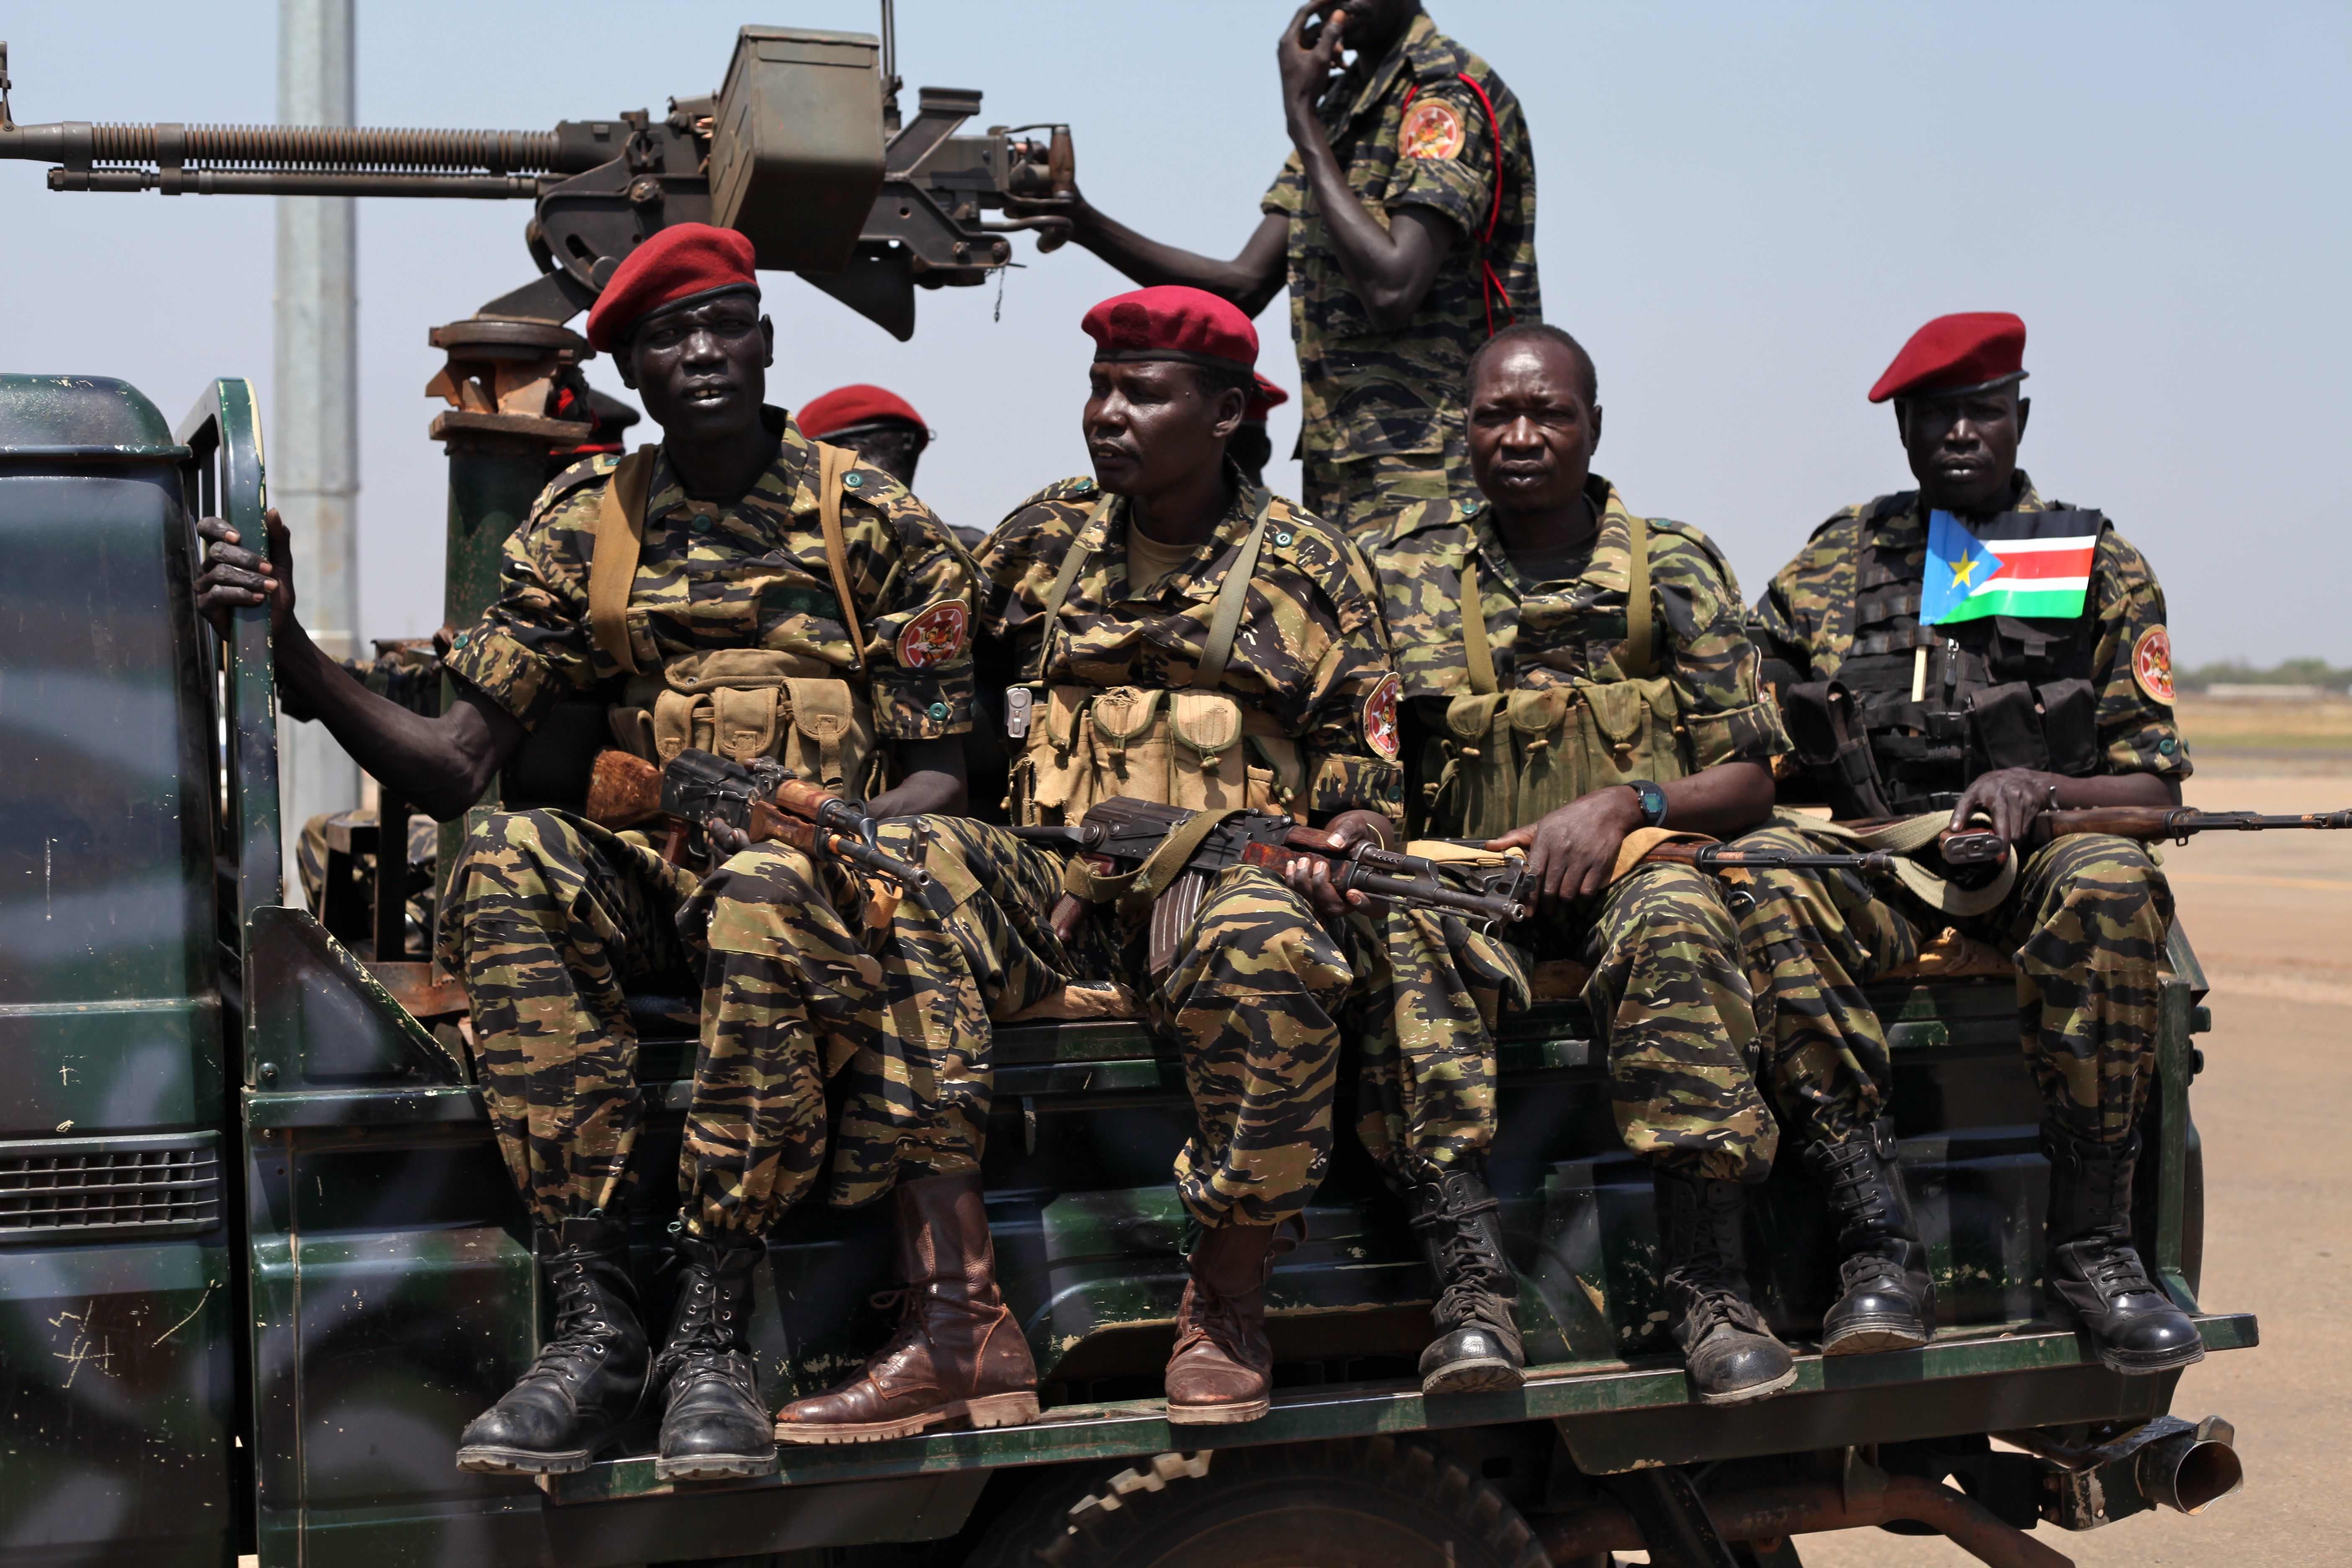 SPLA troops in South Sudan